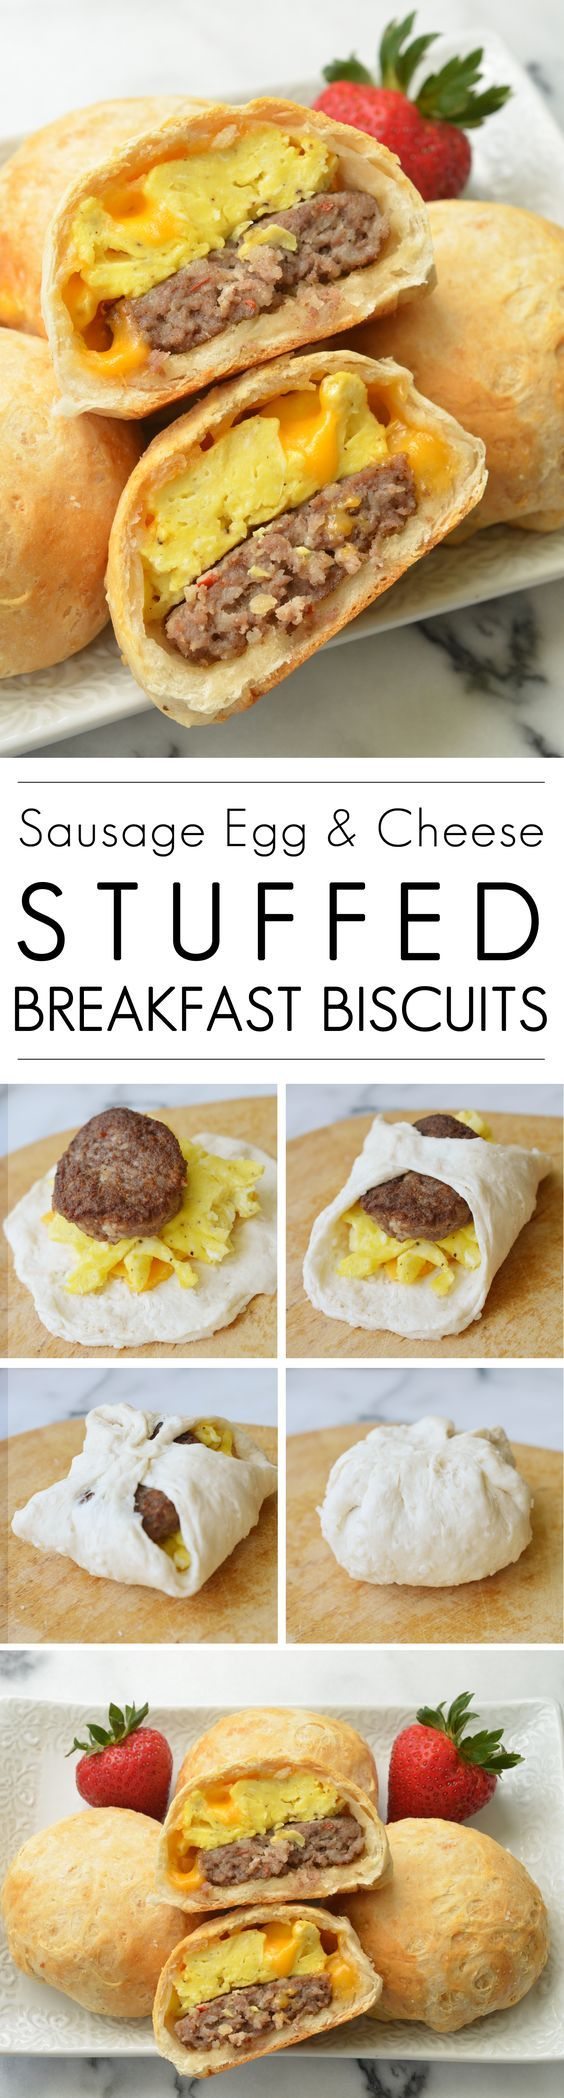 Breakfast recipes using sausage meat